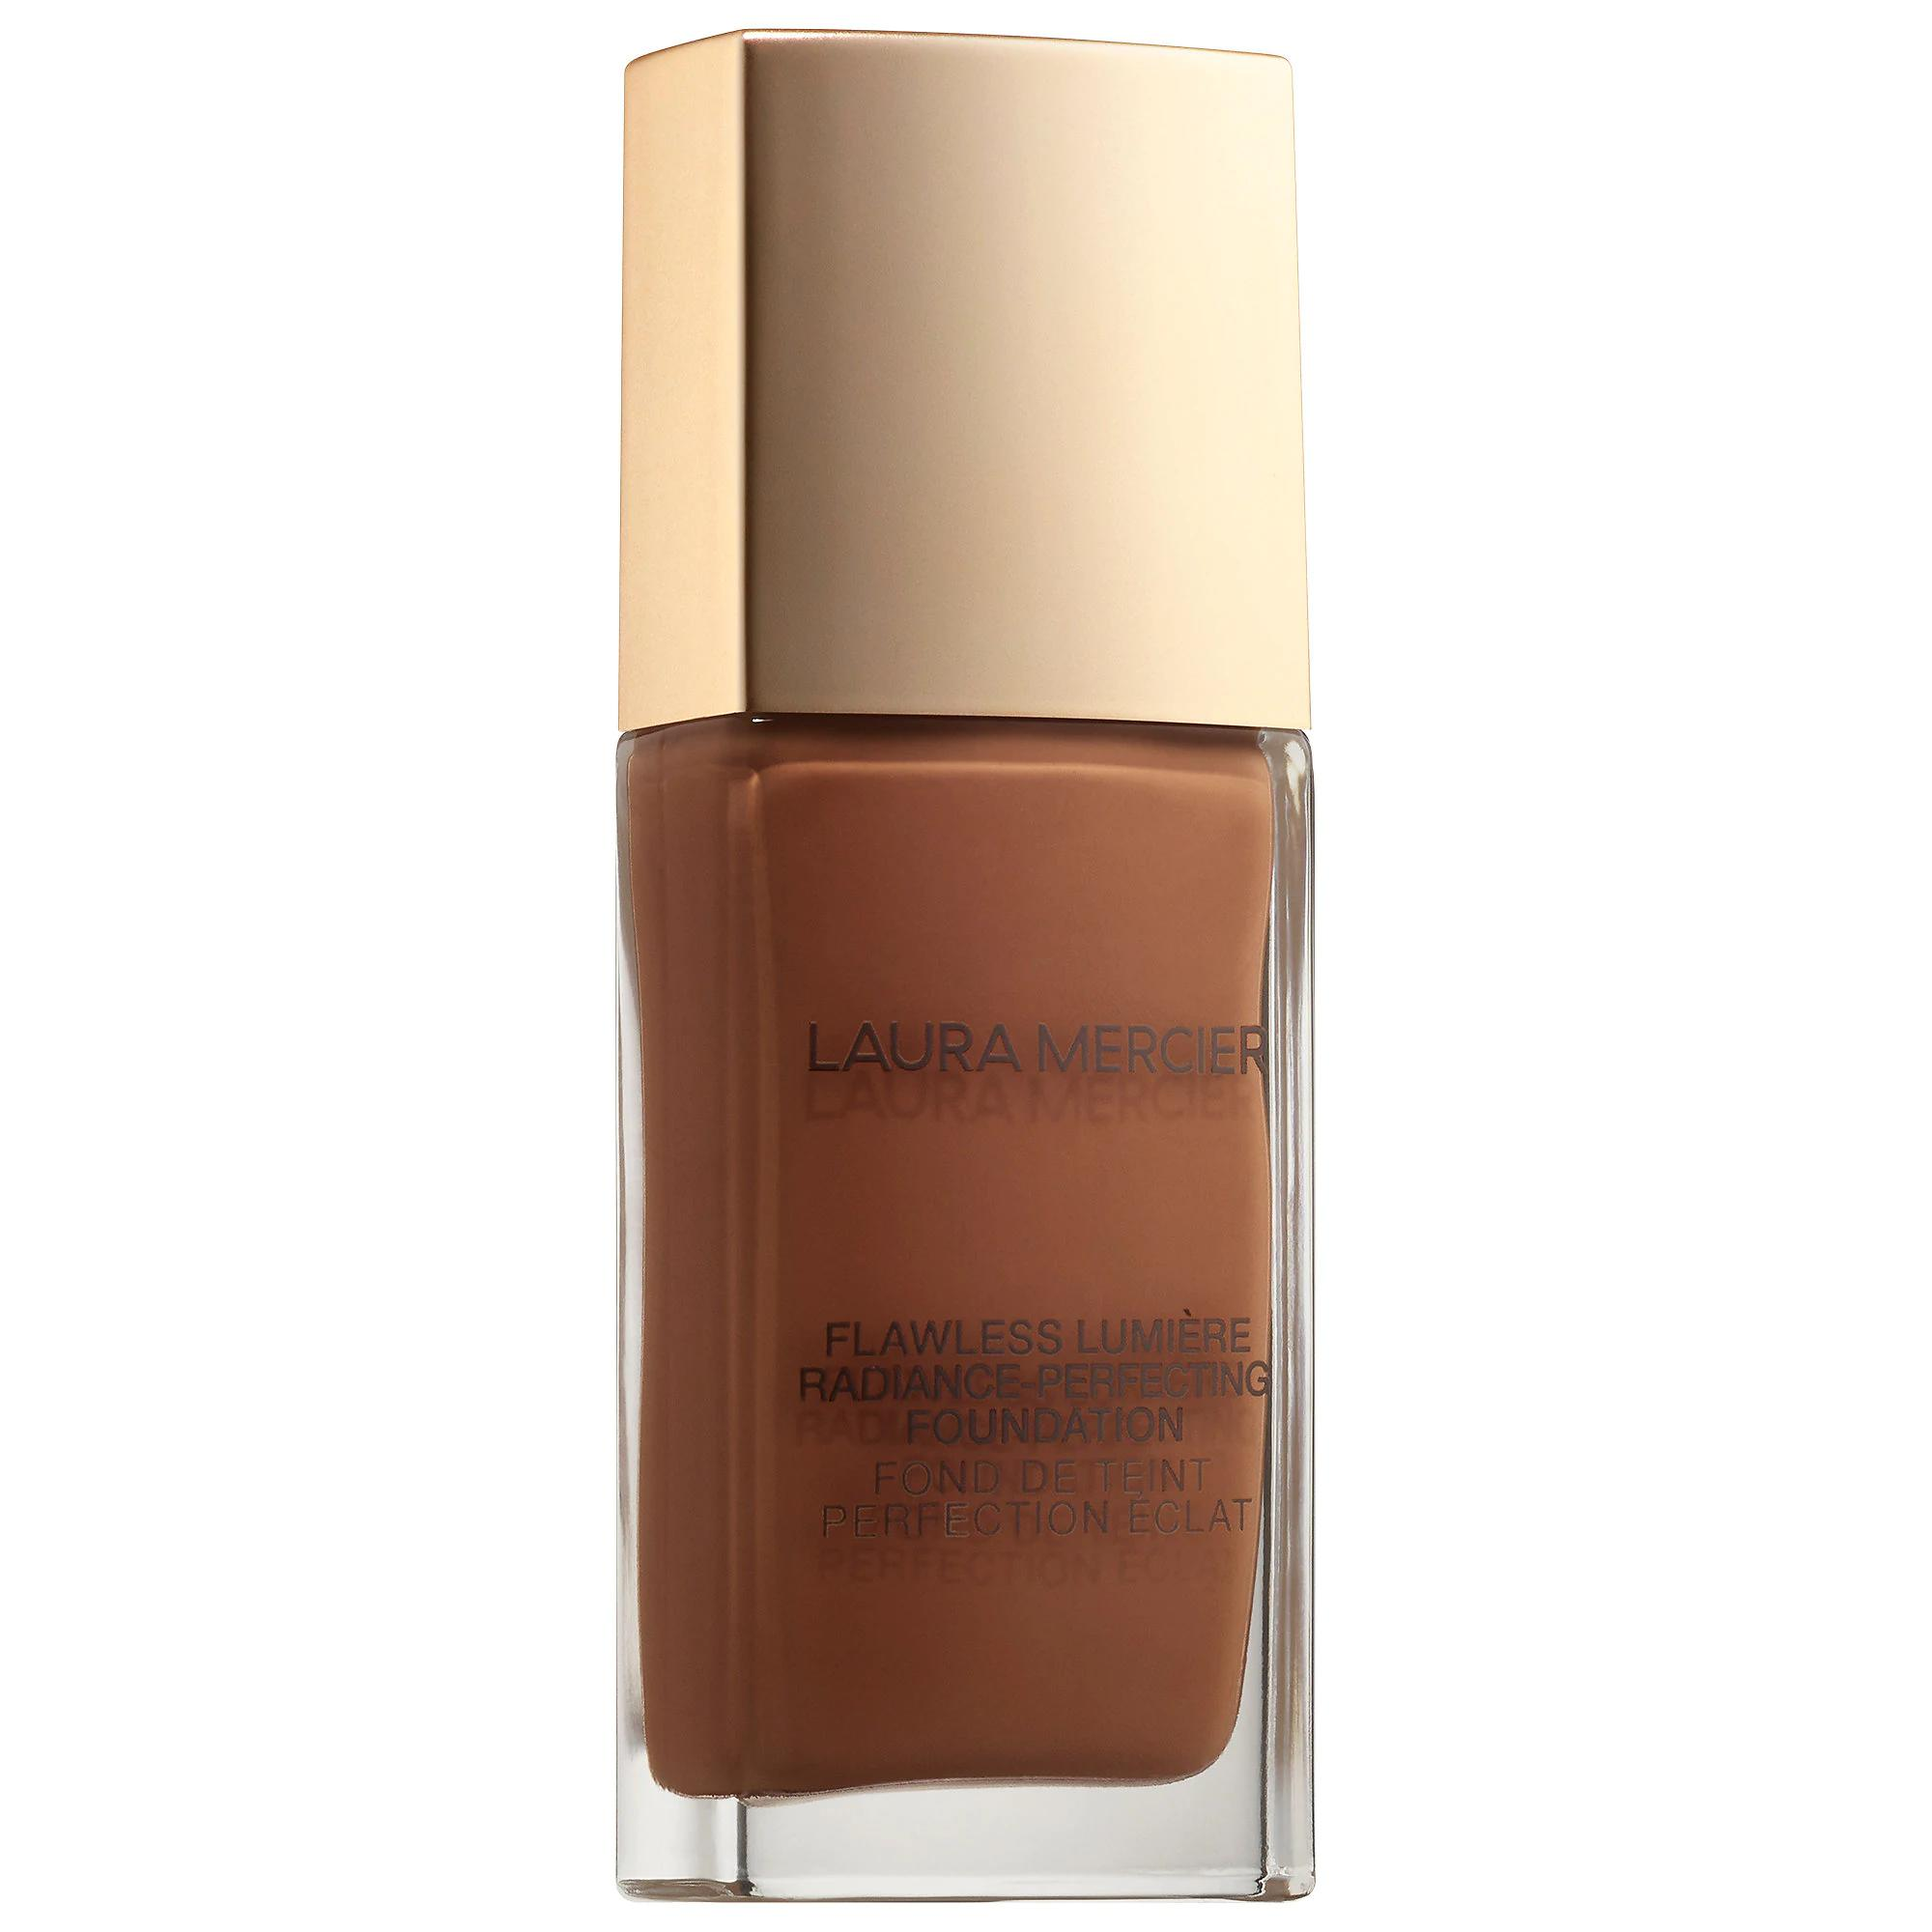 Laura Mercier Flawless Lumiere Radiance-Perfecting Foundation Espresso 6N2